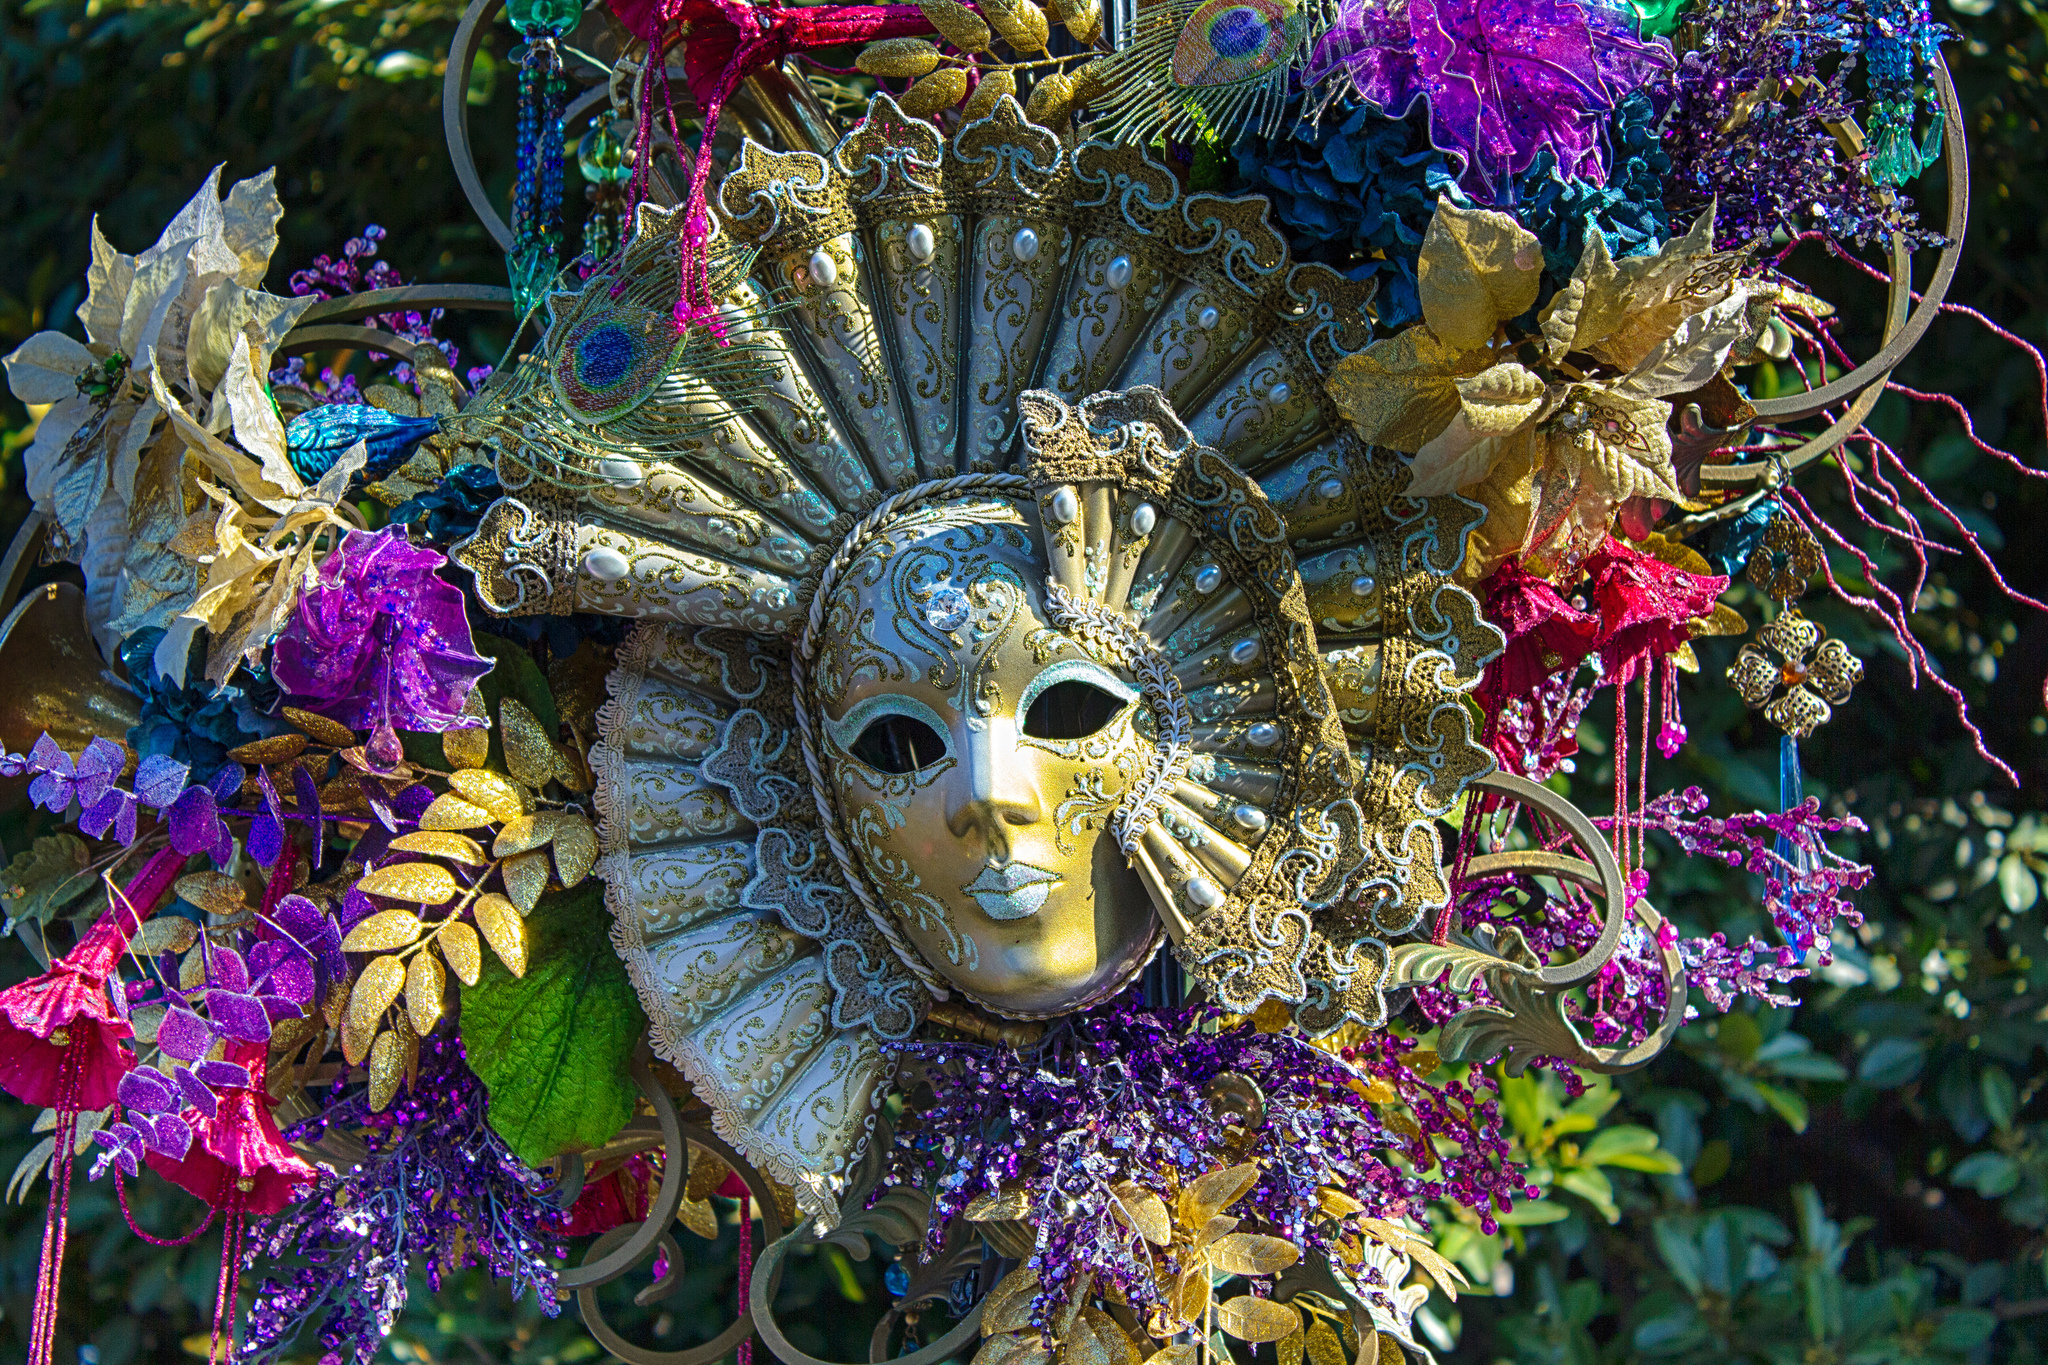 Mardi gras in los angeles includes parties music and more - Free mardi gras pics ...